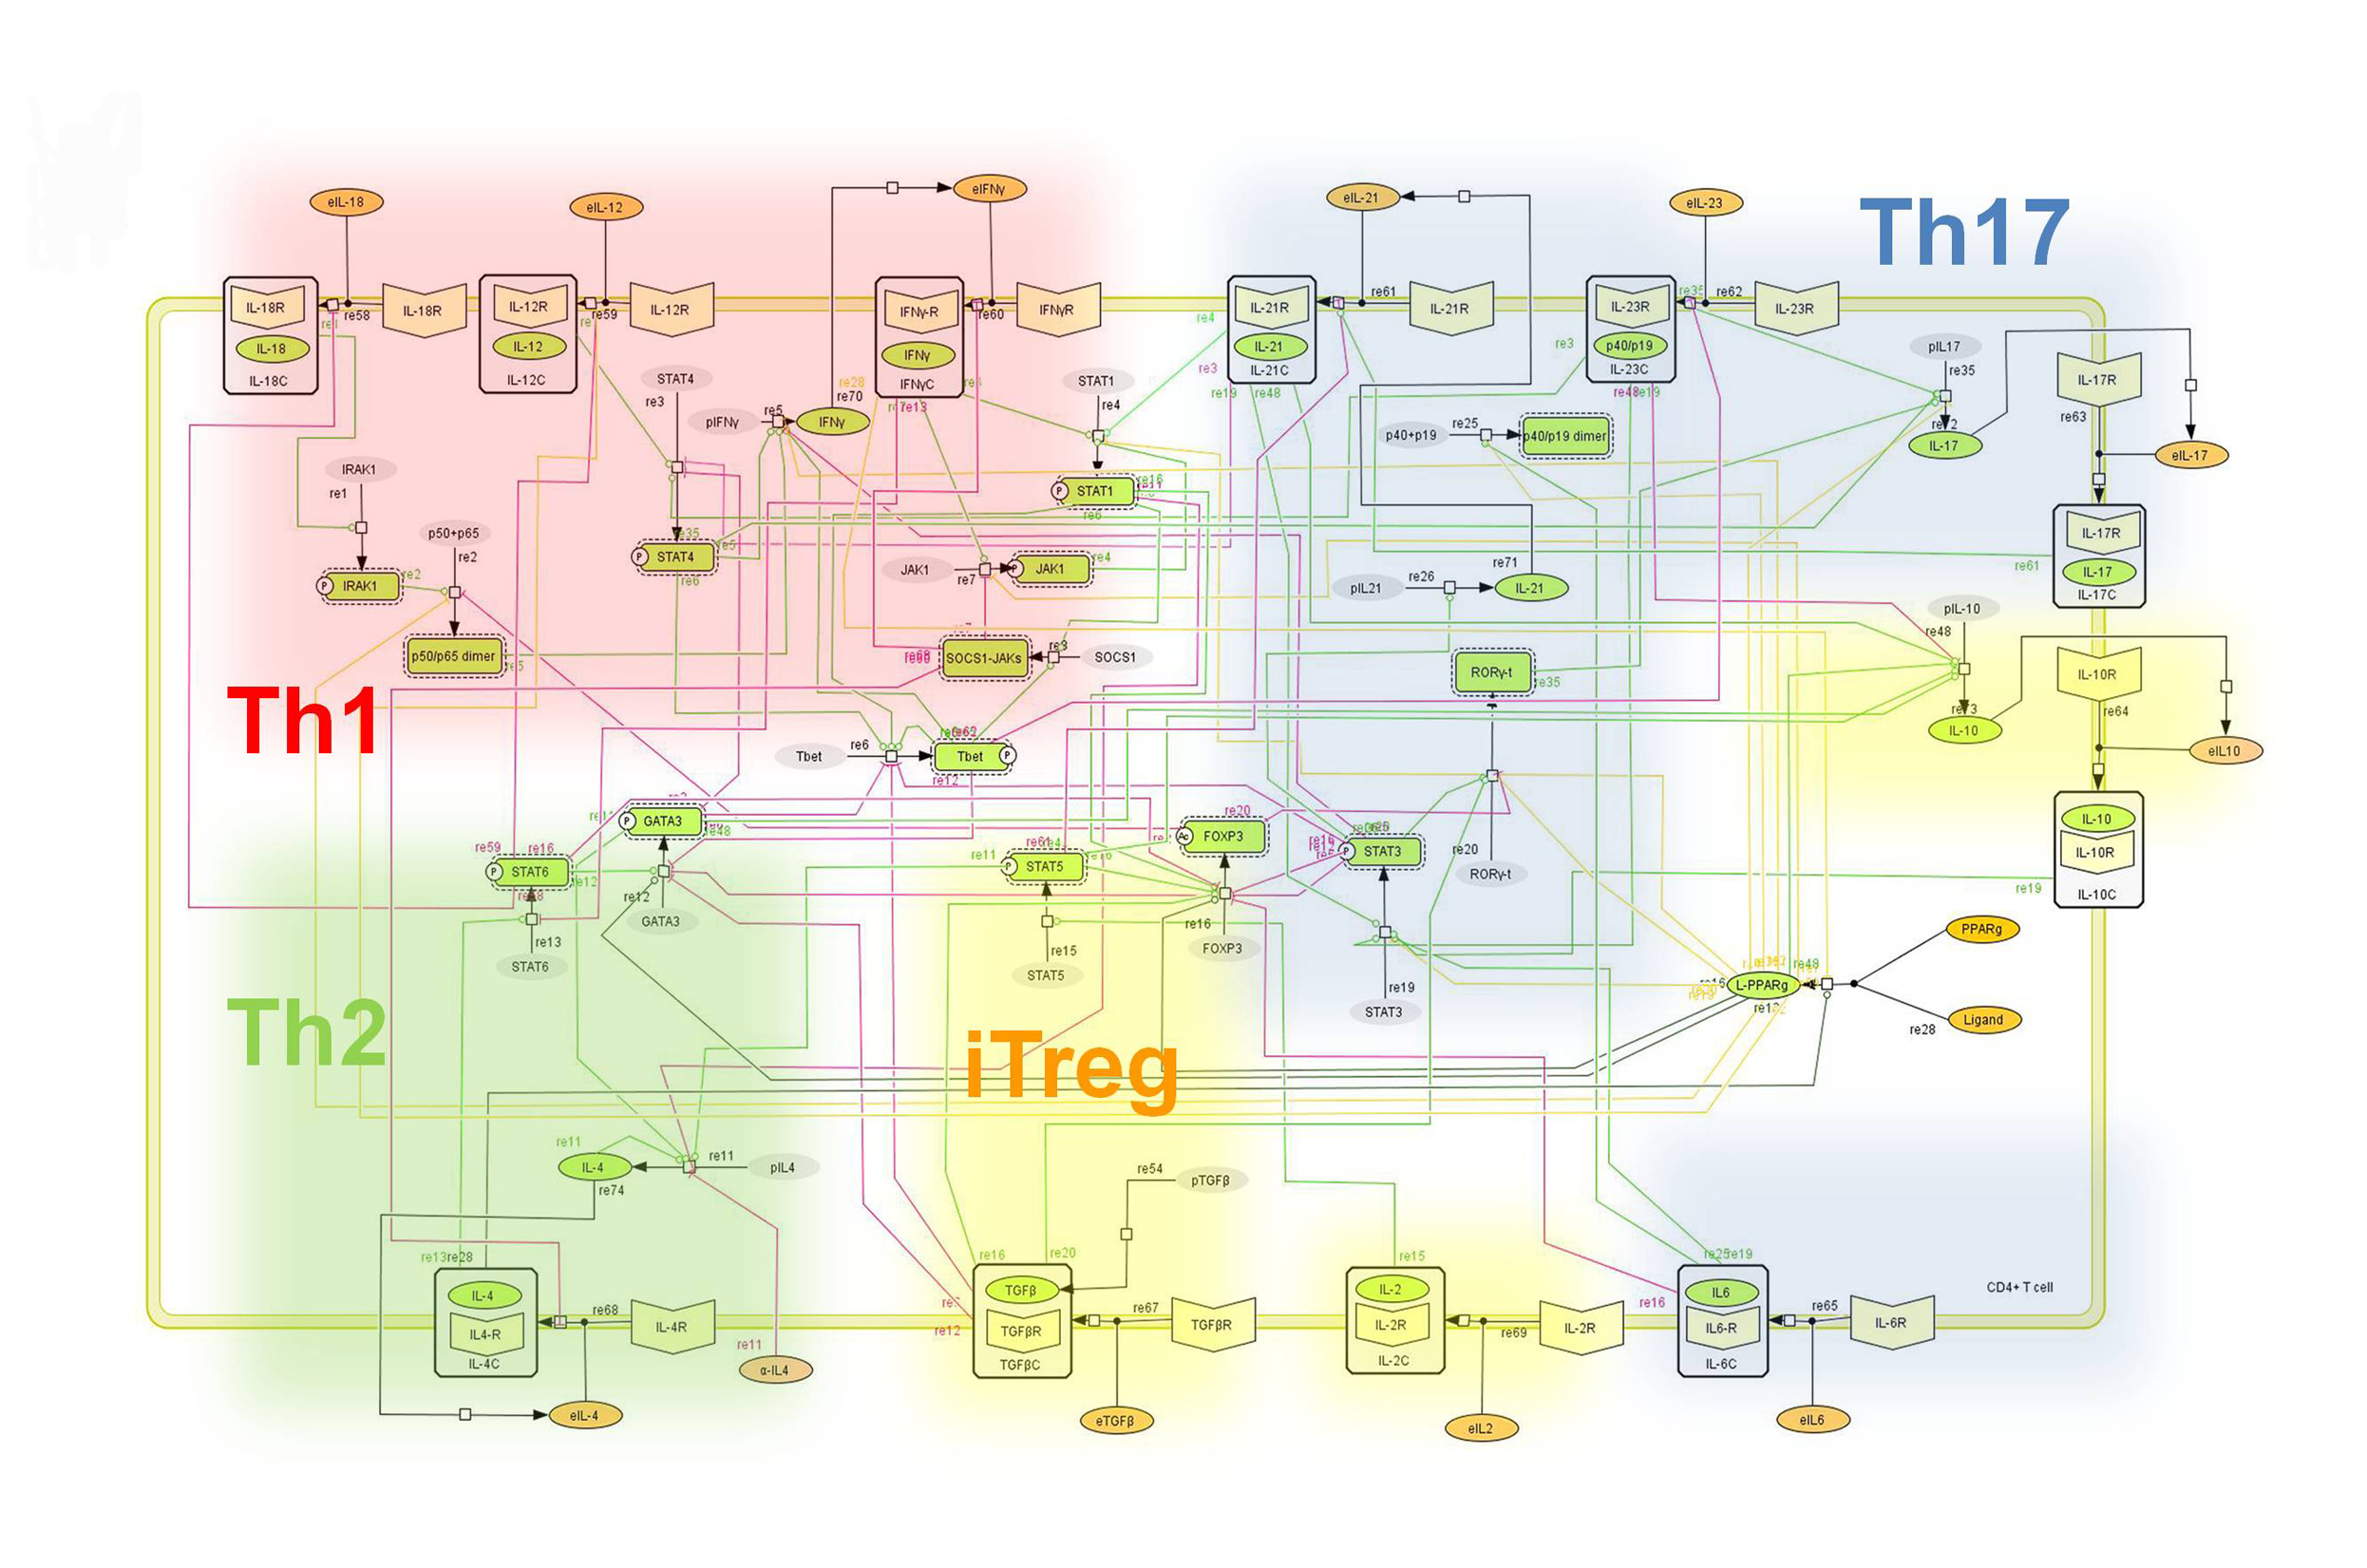 Modeling Nlrx1 Response To Hpylori Nutritional Immunology And Series Parallel Circuit Diagram For Kids Furthermore Figure 1 Network Model Illustrating The Complex Intracellular Signaling Pathways Transcriptional Factors Controlling Cd4 T Cell Differentiation